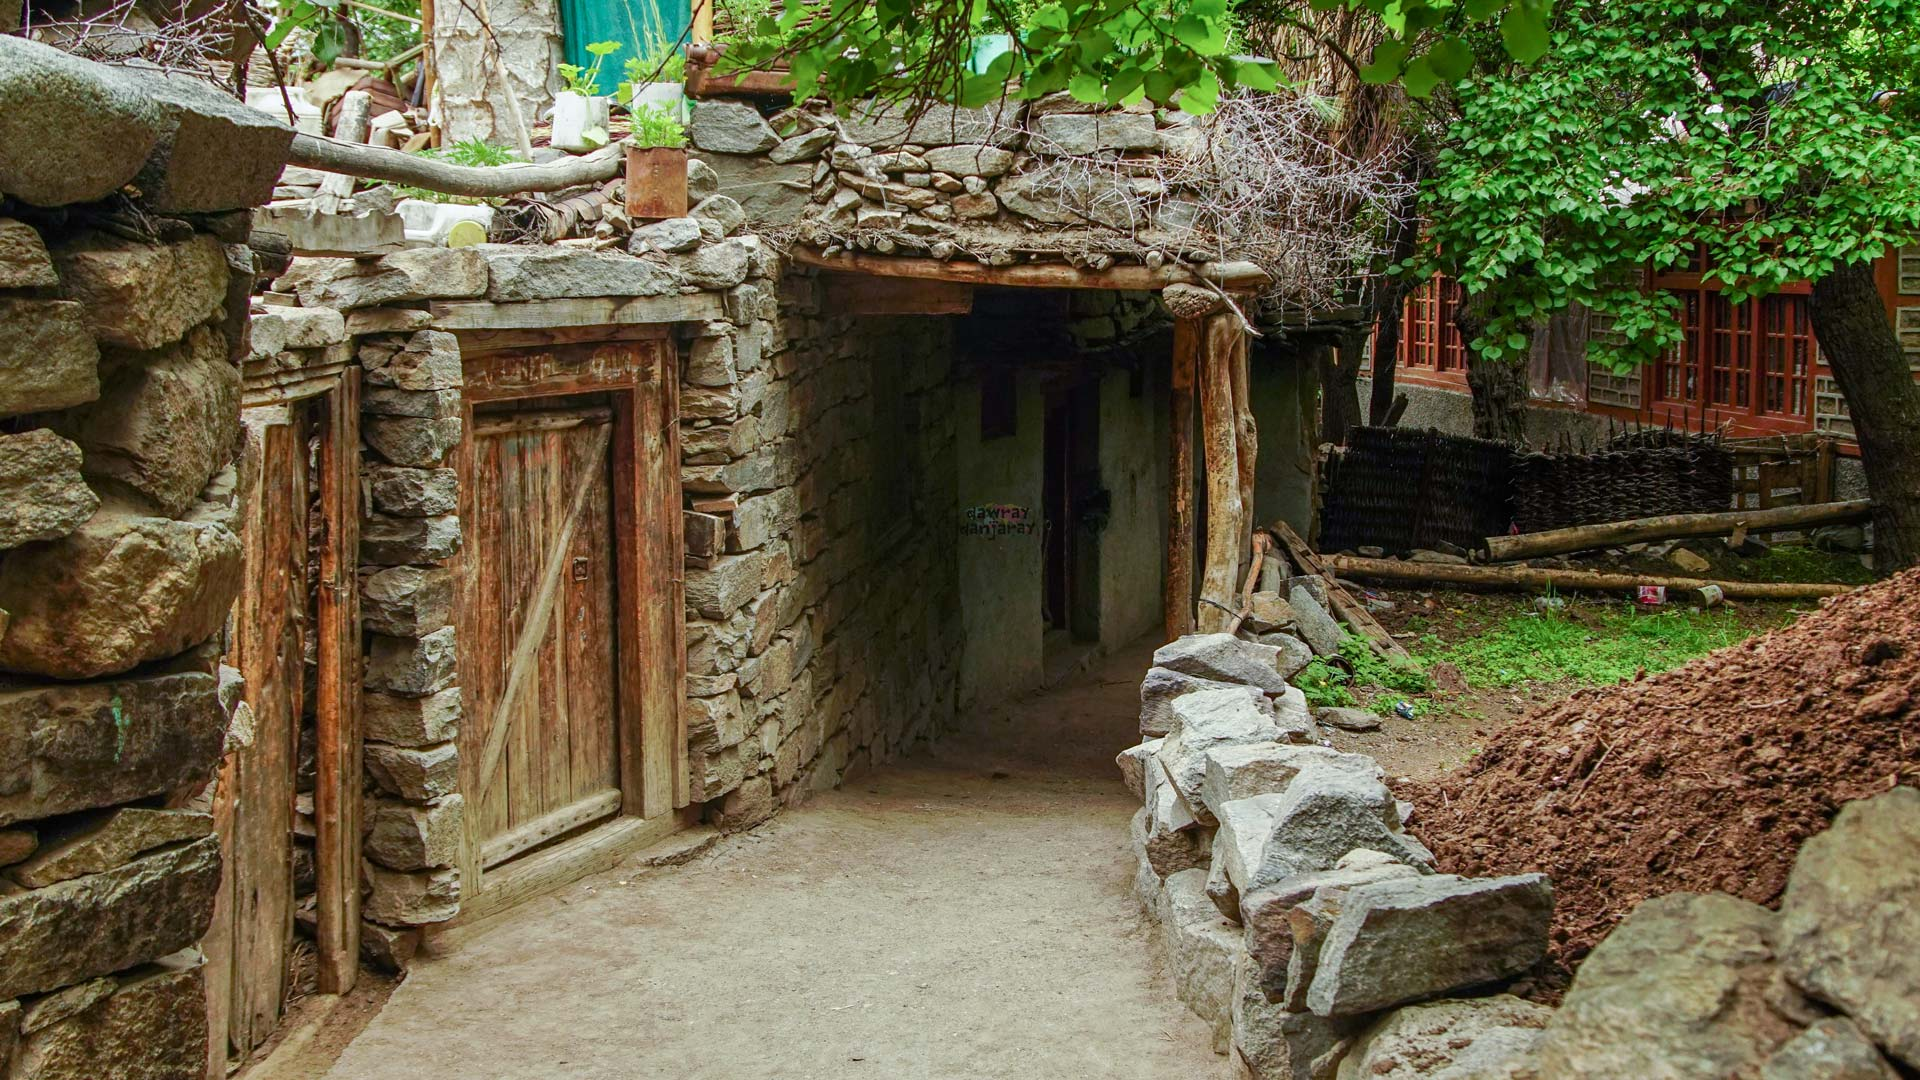 The village Turtuk